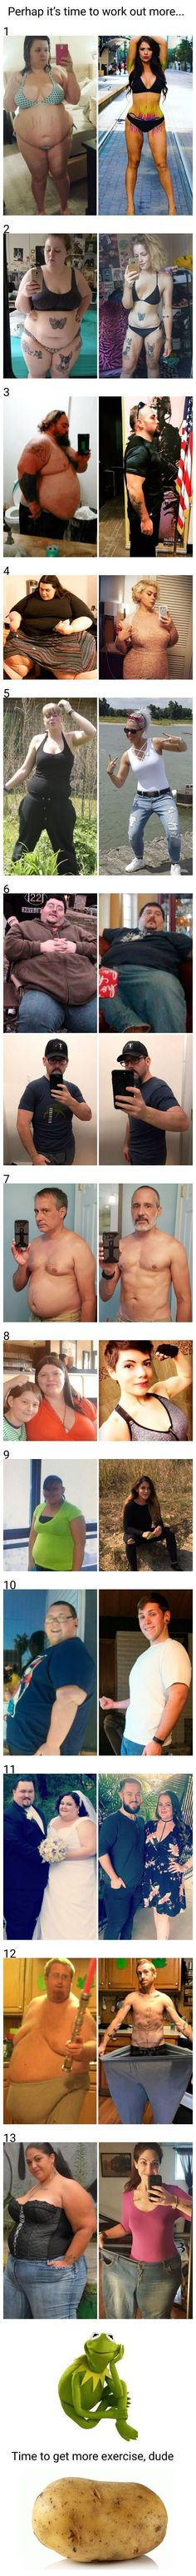 10+ Before And After Photos Of People With Dramatic Weight Loss #loseweightbeforeandafter #weightlossbeforeafter